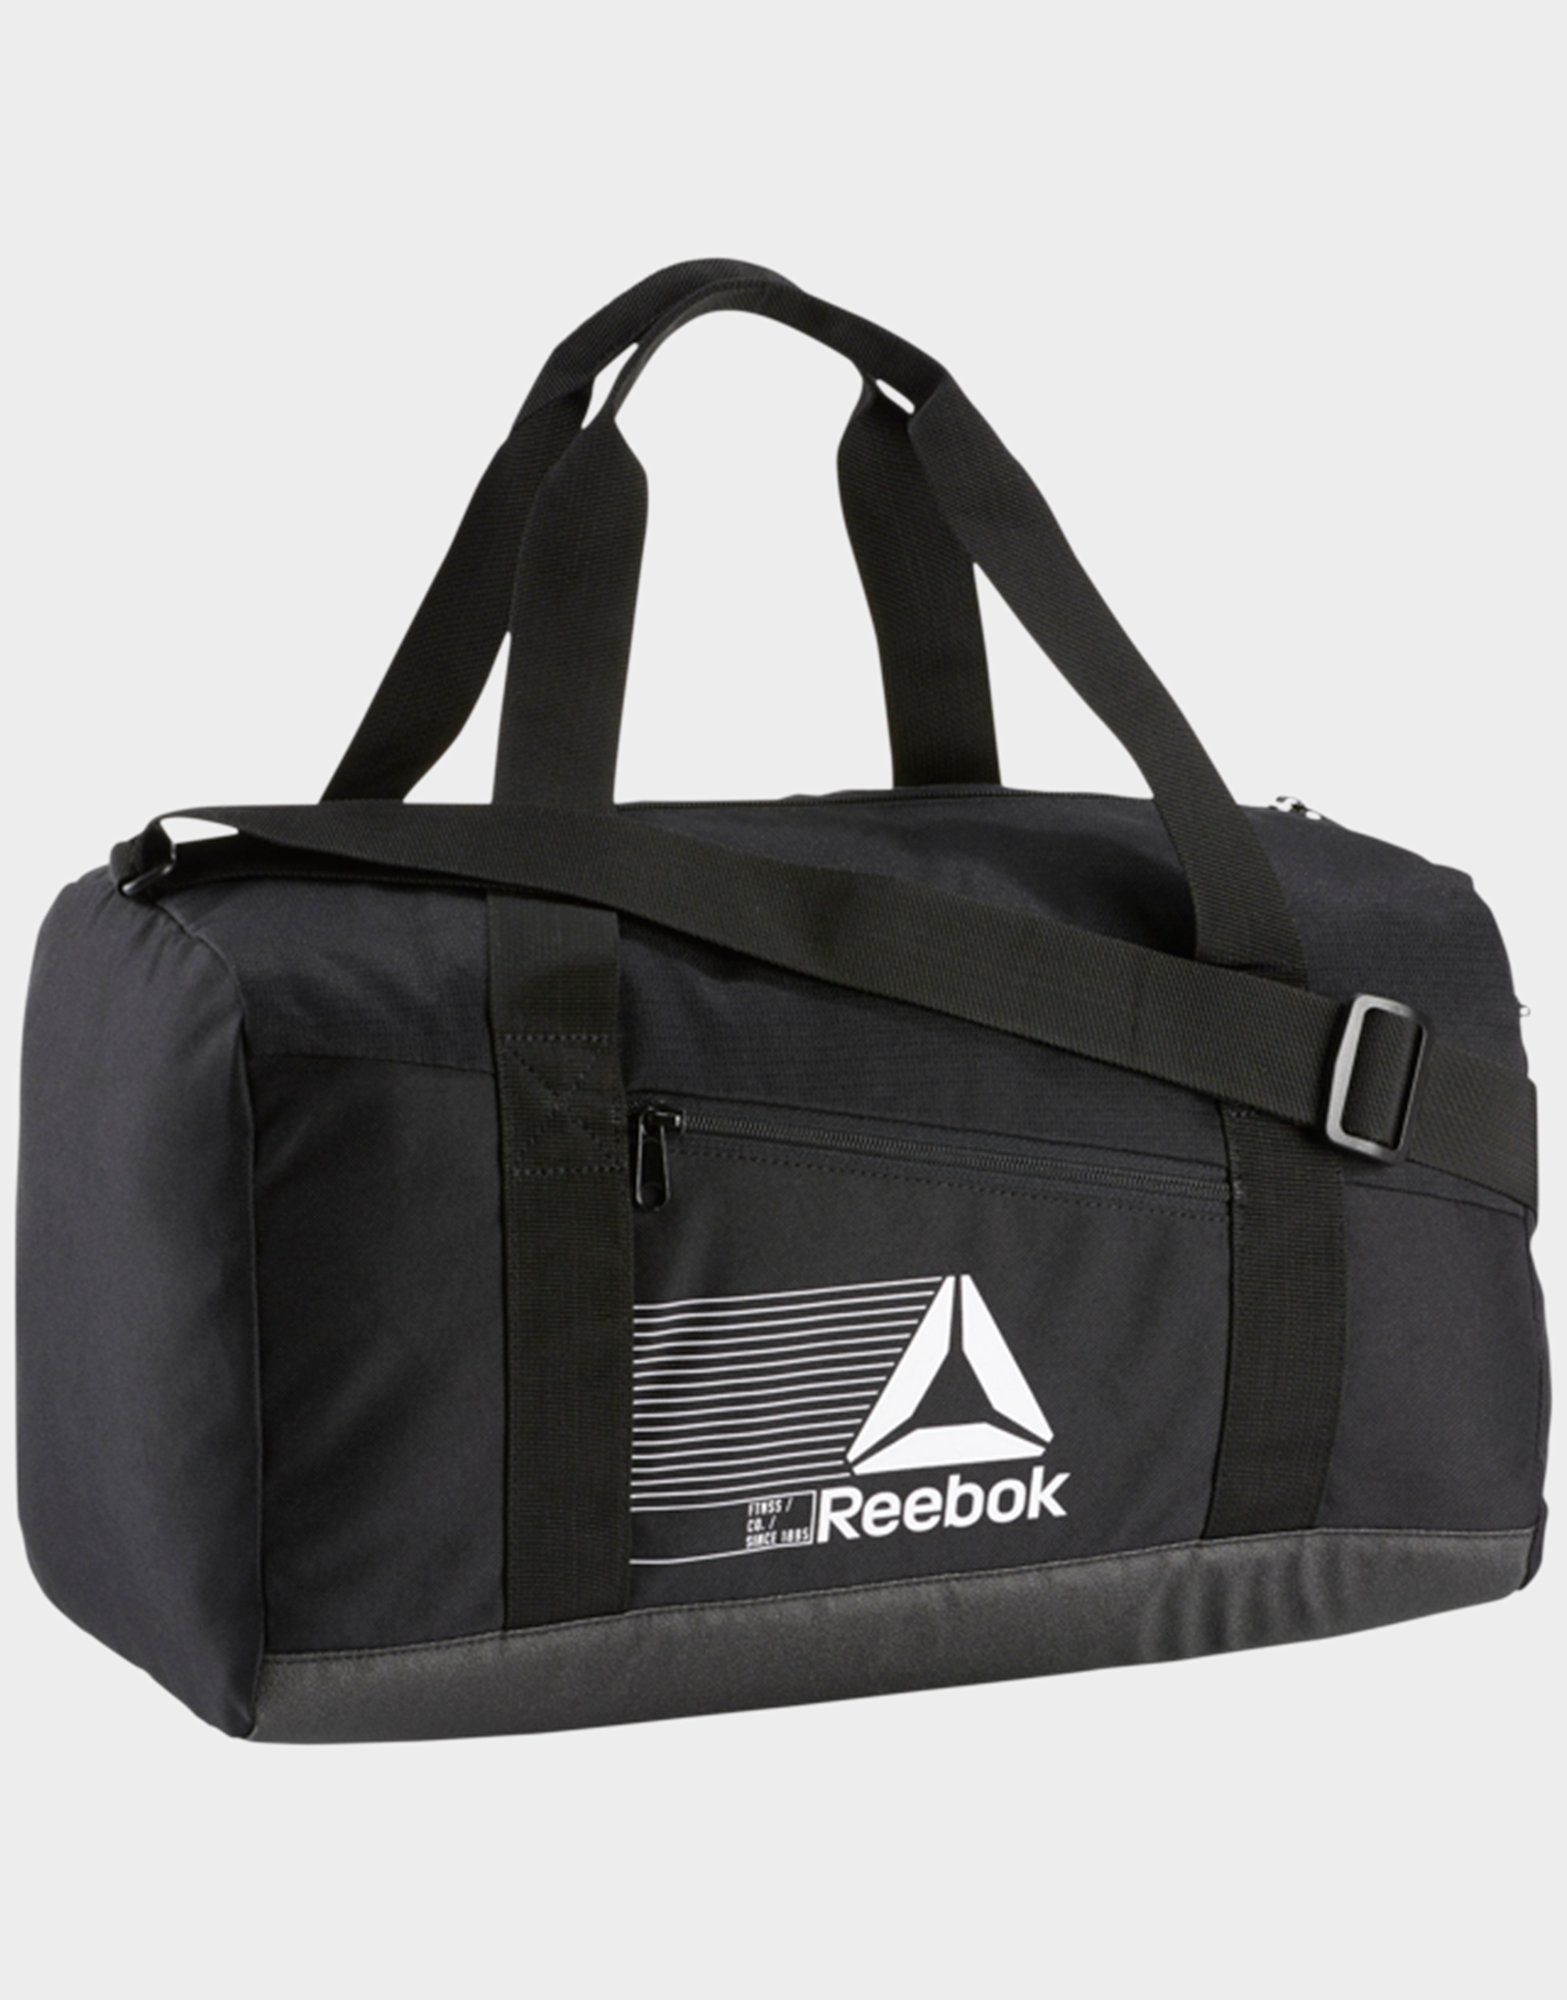 691489f183 REEBOK Active Foundation Grip Duffel Bag Small